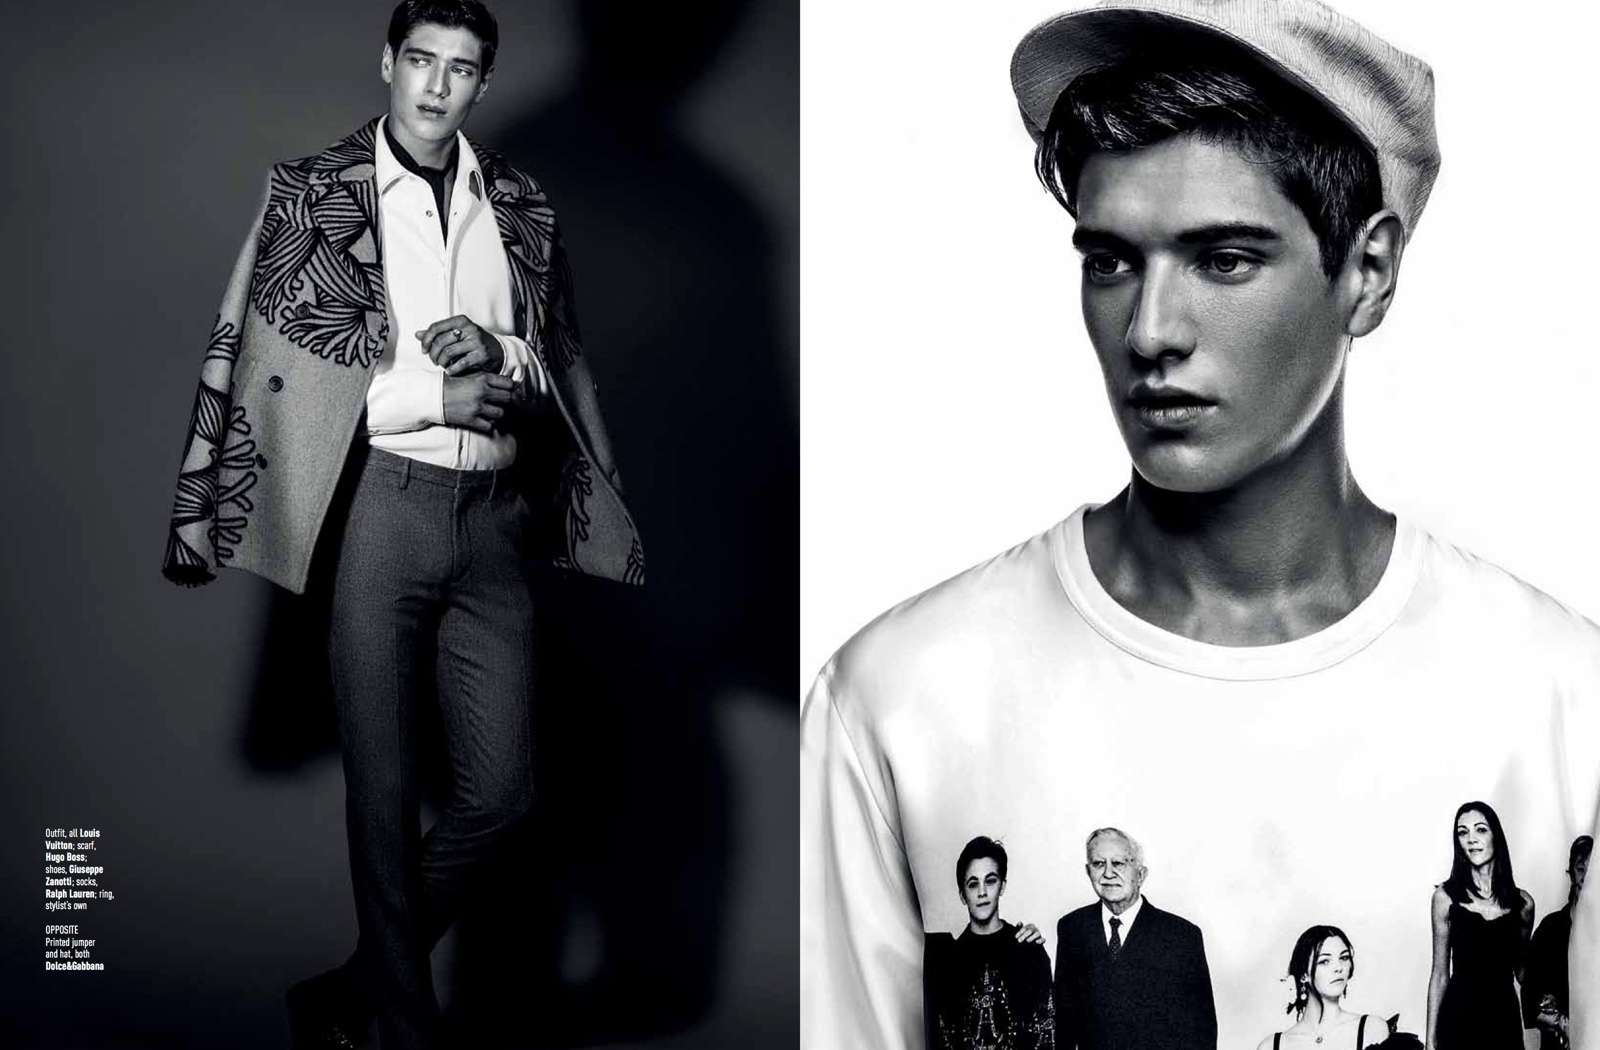 1950s Men's Fashions Inspire August Man Editorial | The ...